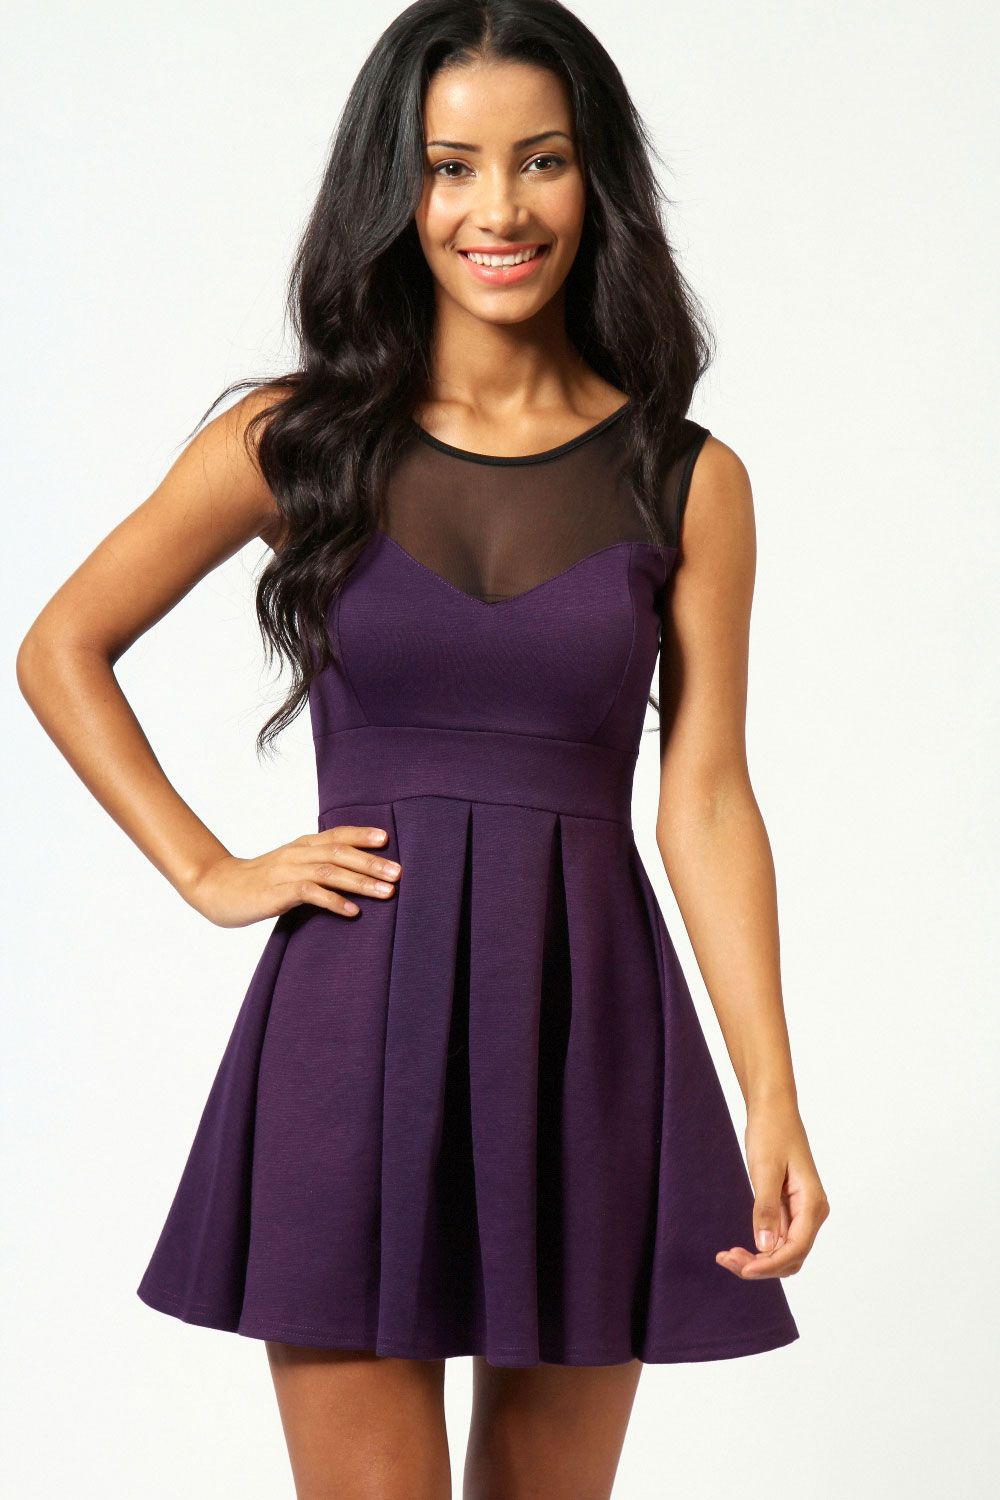 Cherry Skater Dress | Student discounts, Boohoo and Students